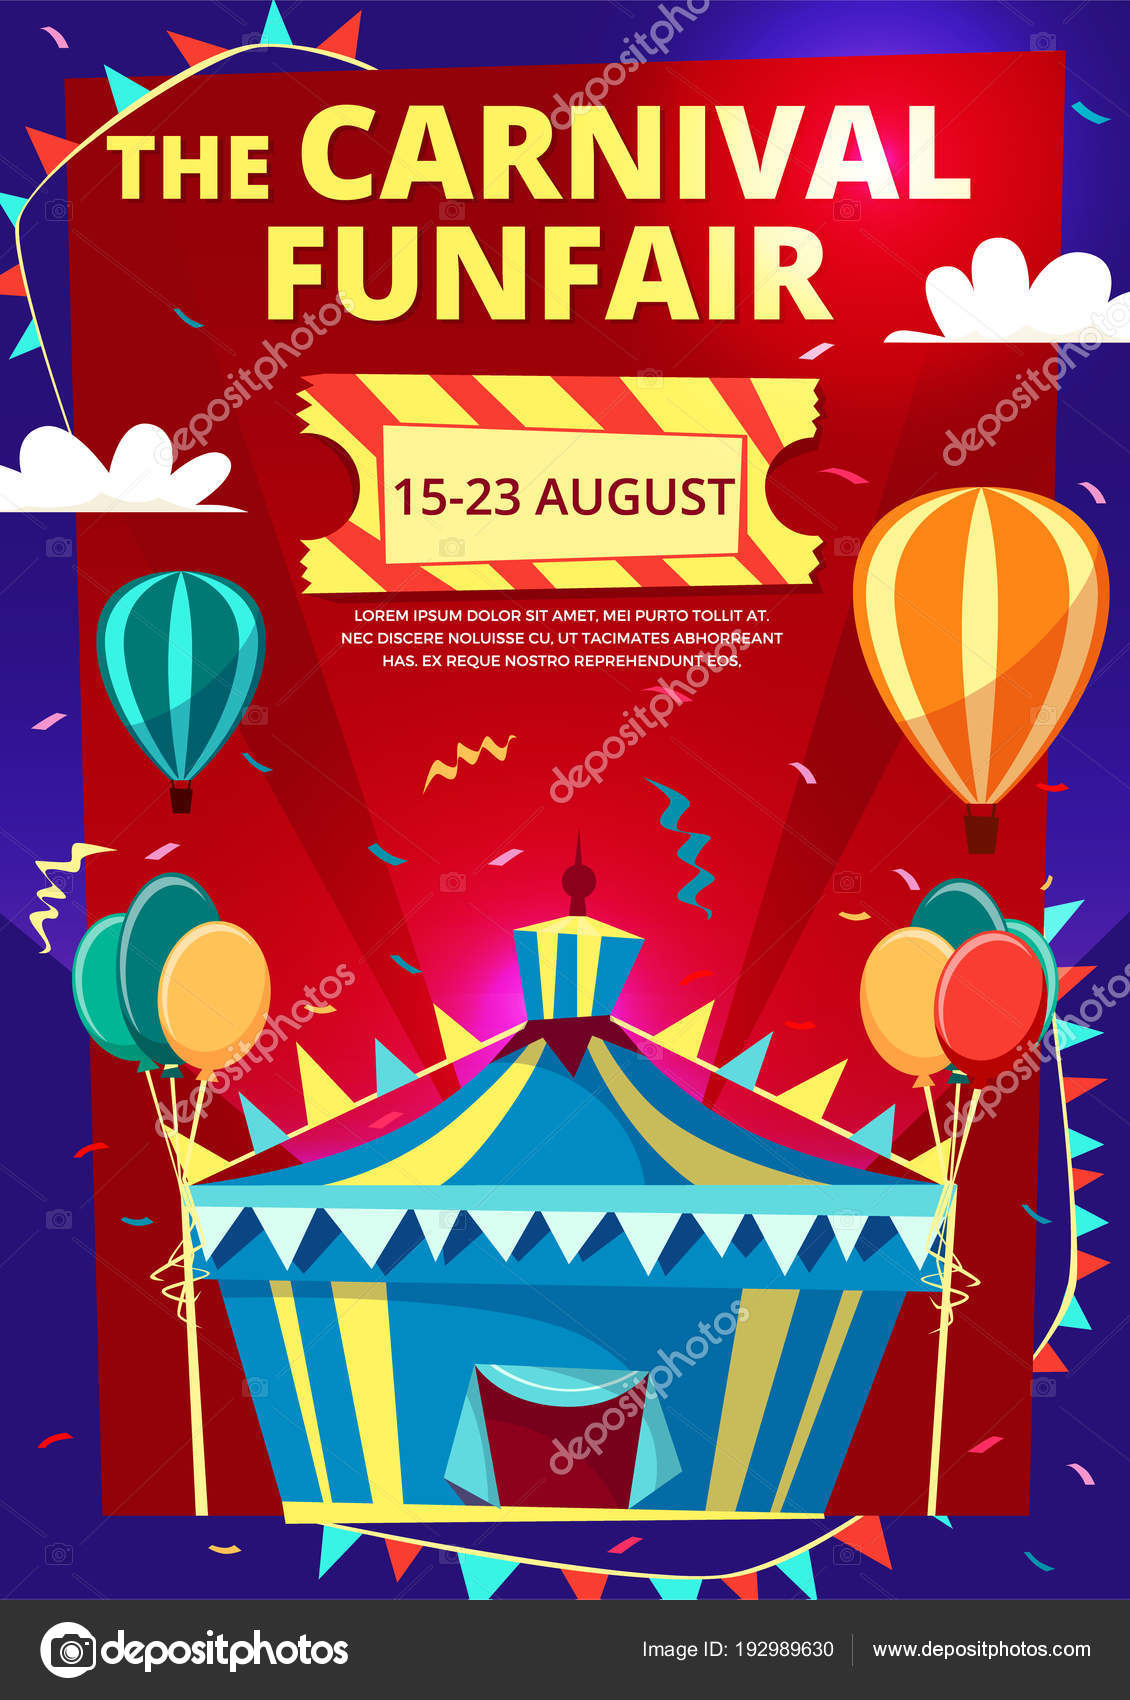 Carnival Funfair Vector Cartoon Illustration Of Circus Invitation